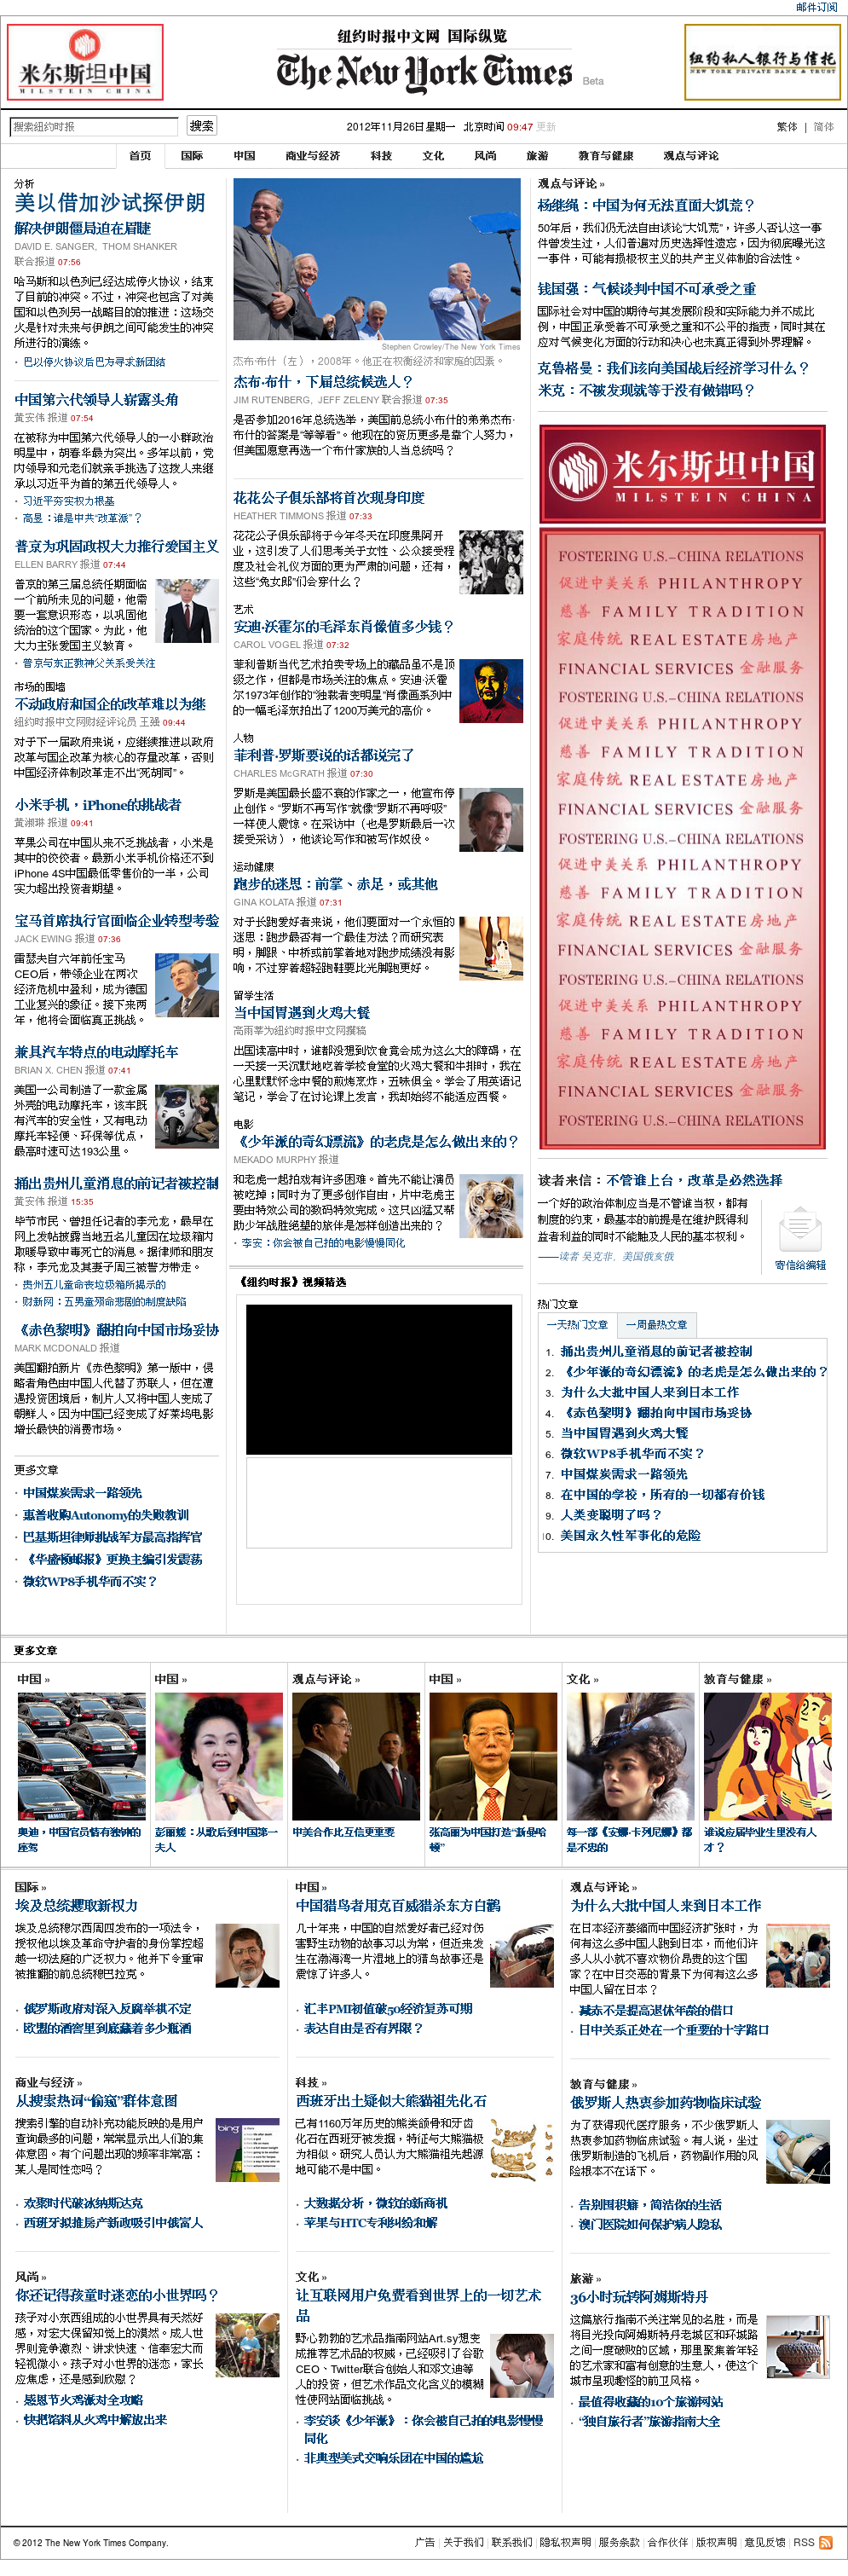 The New York Times (Chinese) at Monday Nov. 26, 2012, 2:21 a.m. UTC